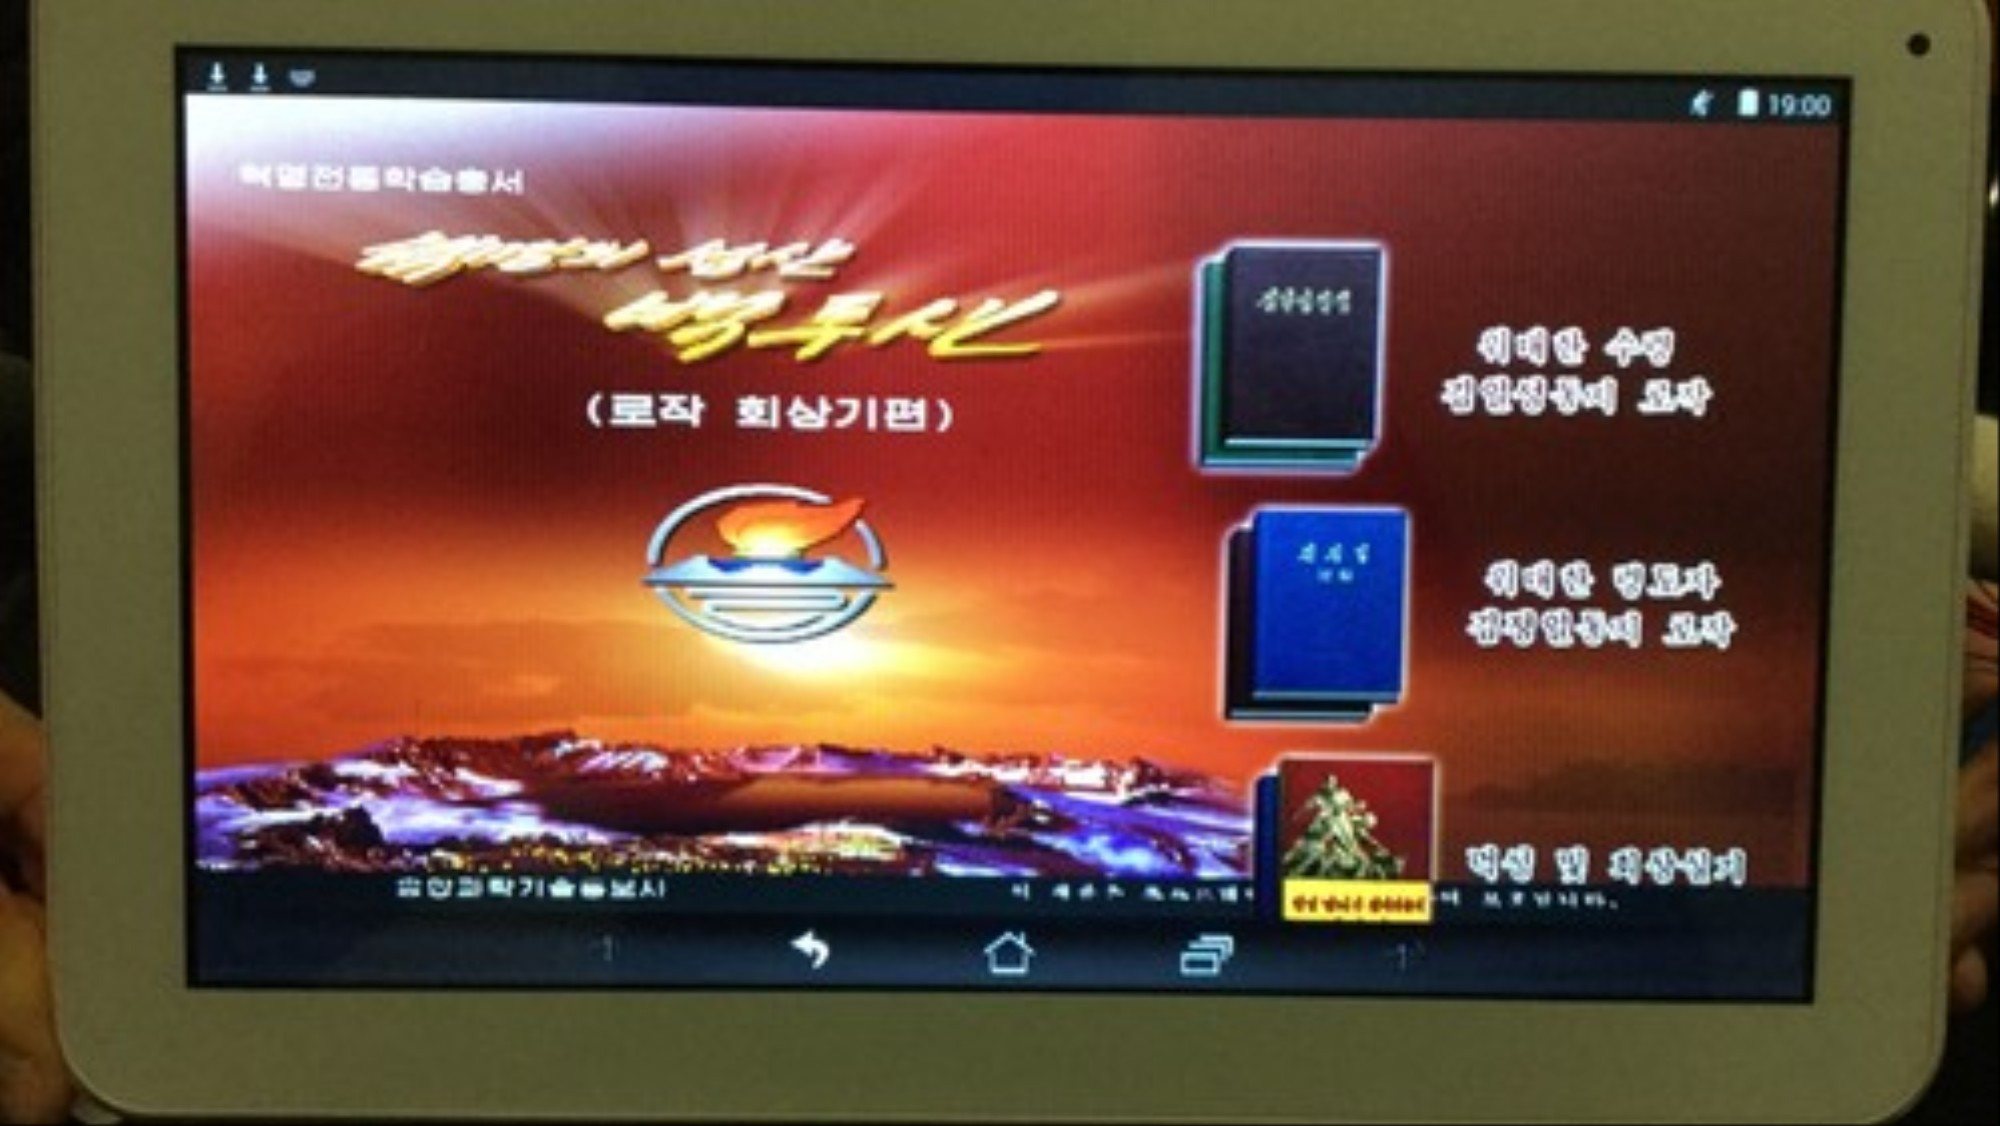 Here's North Korea's Totalitarian Android Tablet - VICE